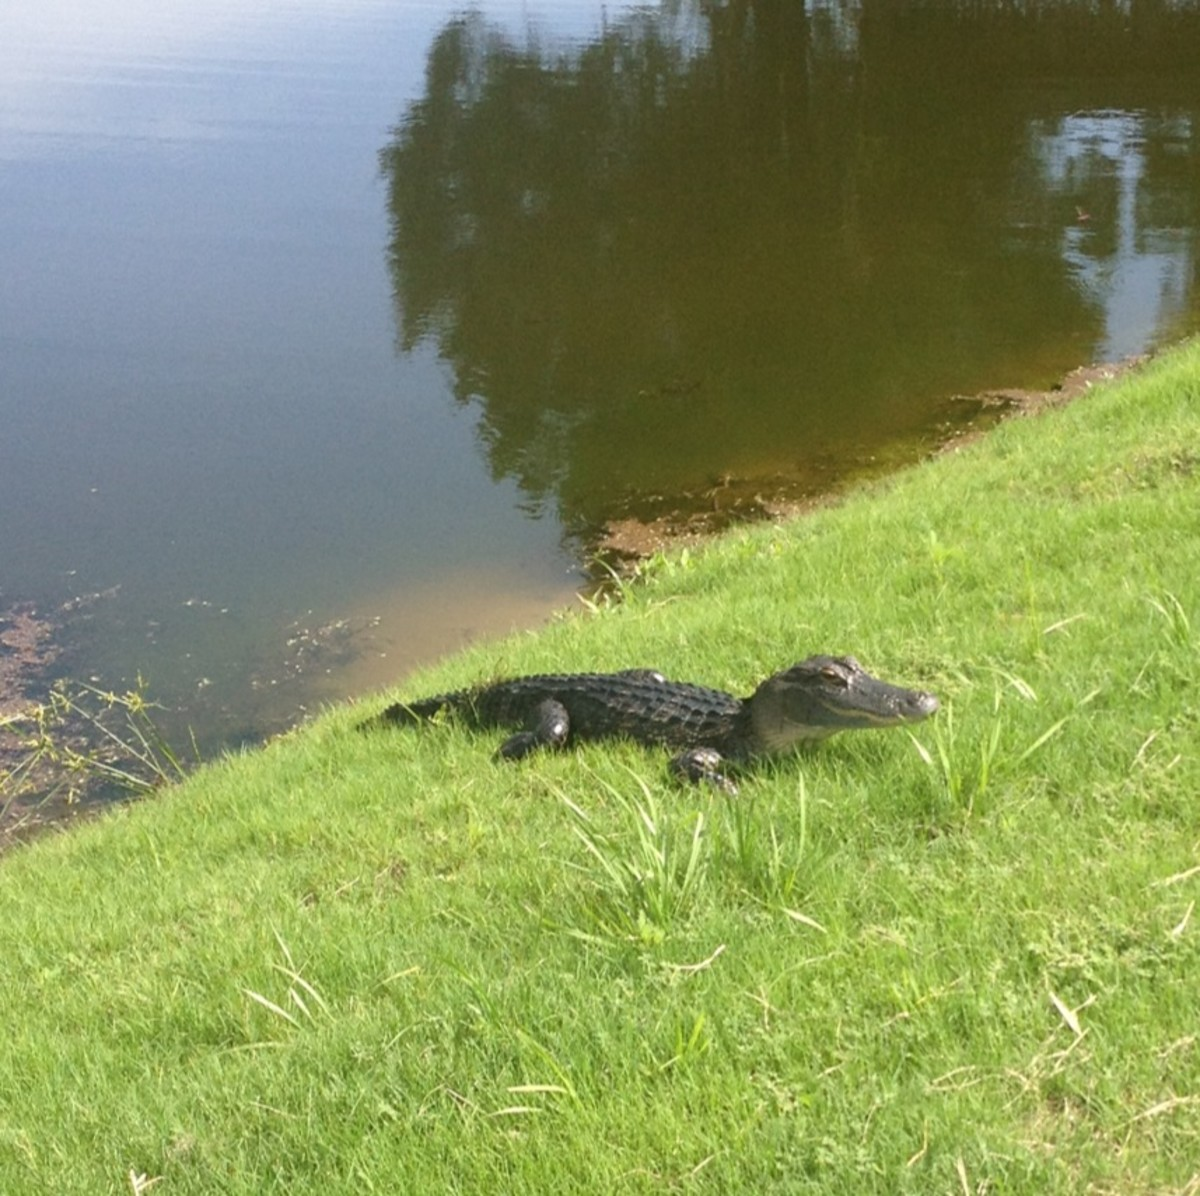 Gators are everywhere in Florida